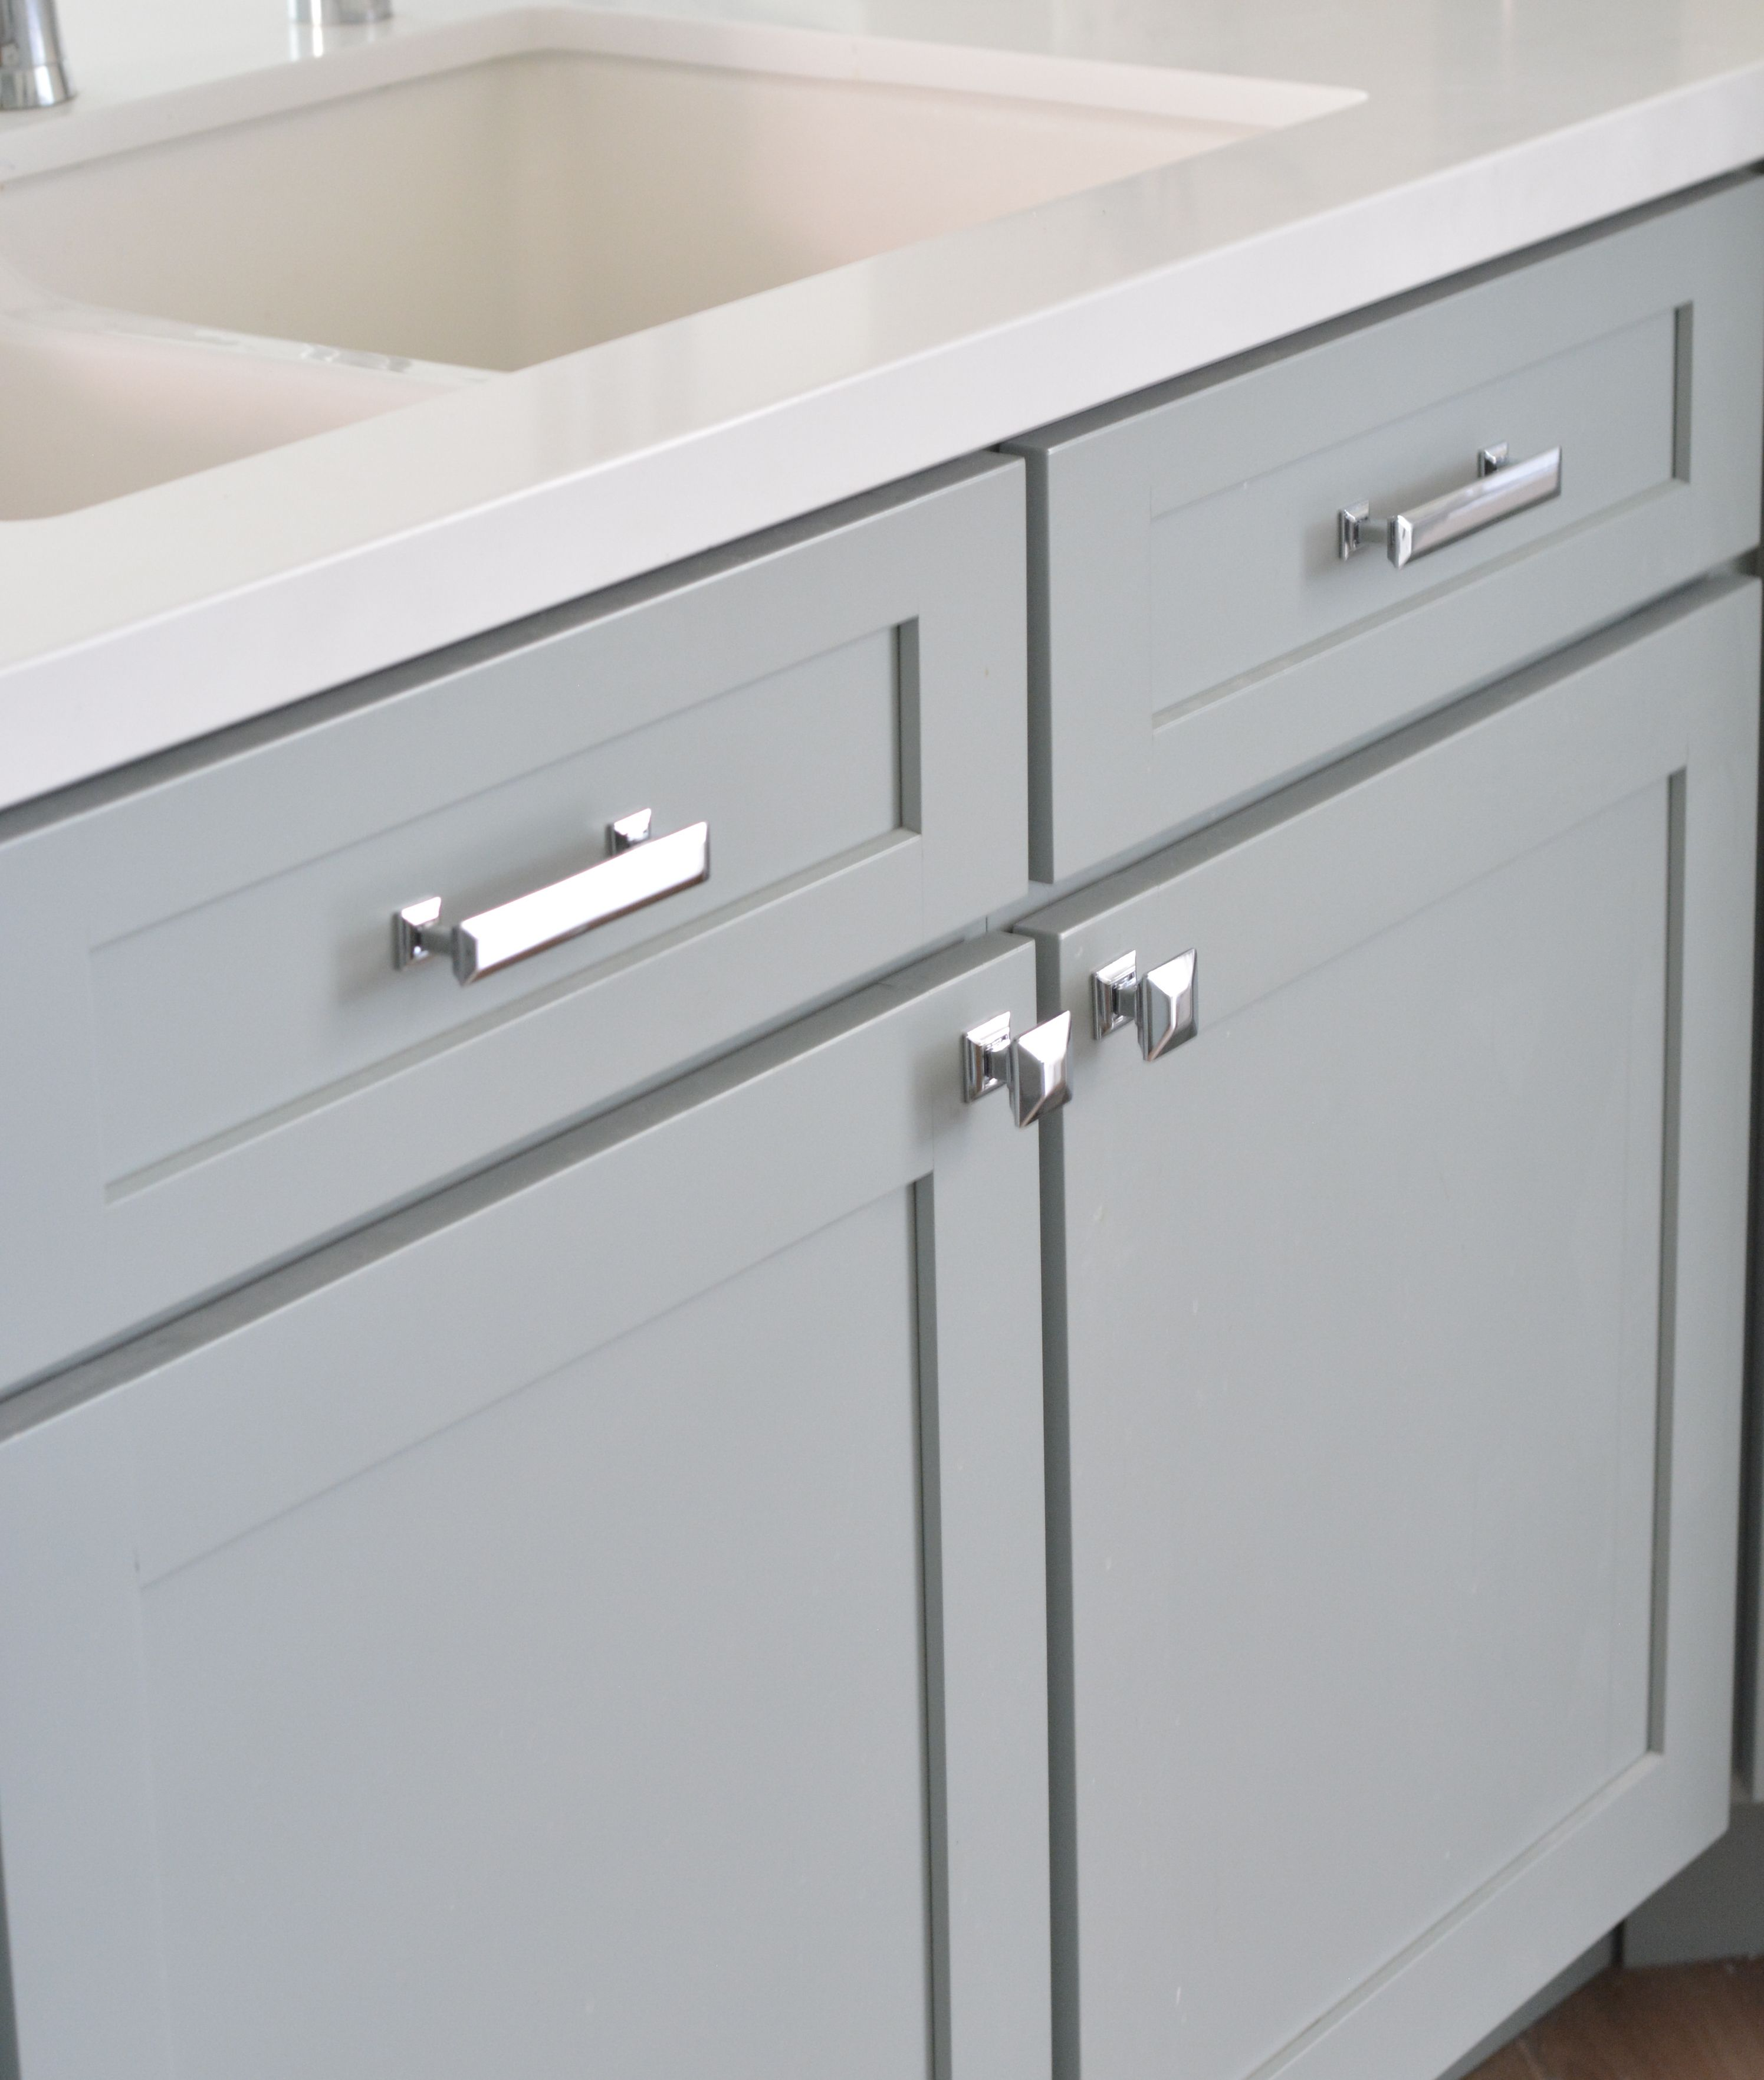 Some folks prefer using two handles on a wide drawer.